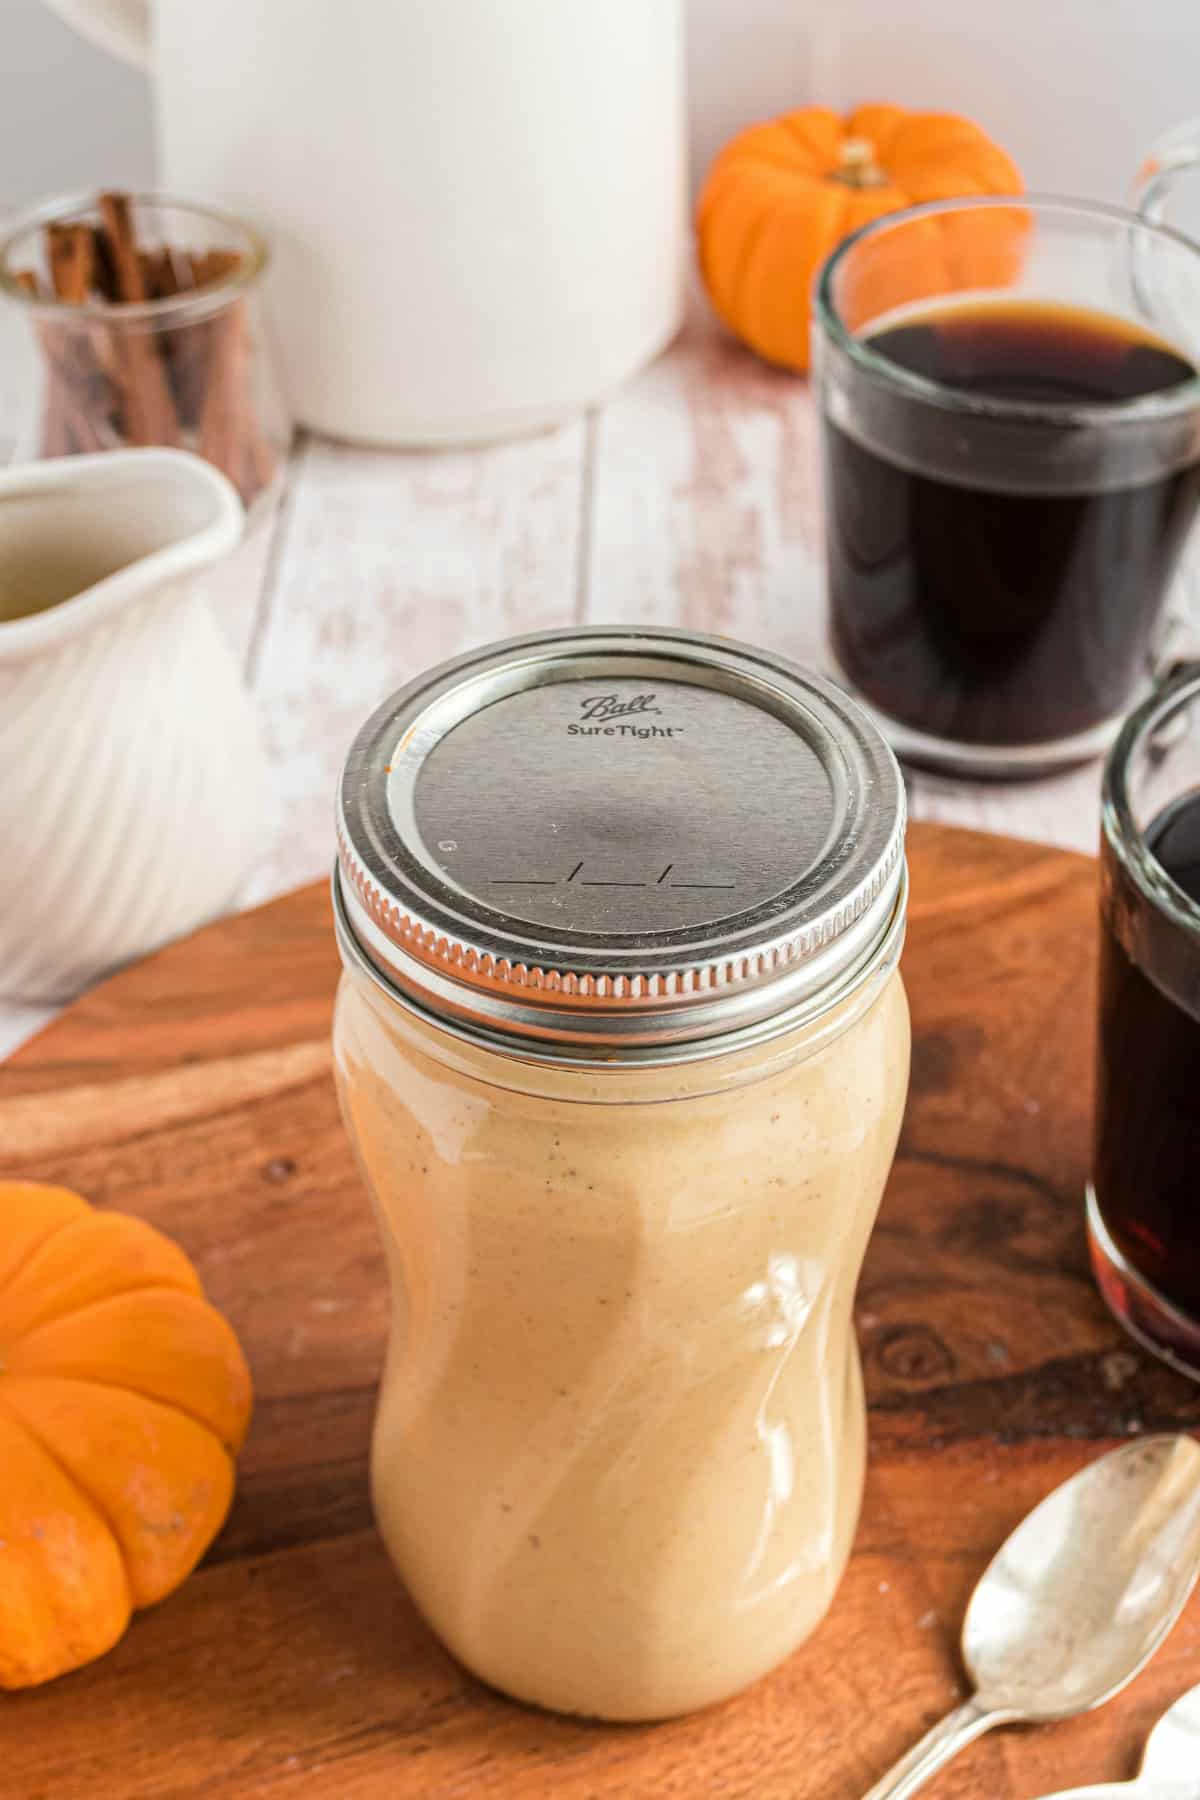 Mason jar filled with pumpkin spice creamer.